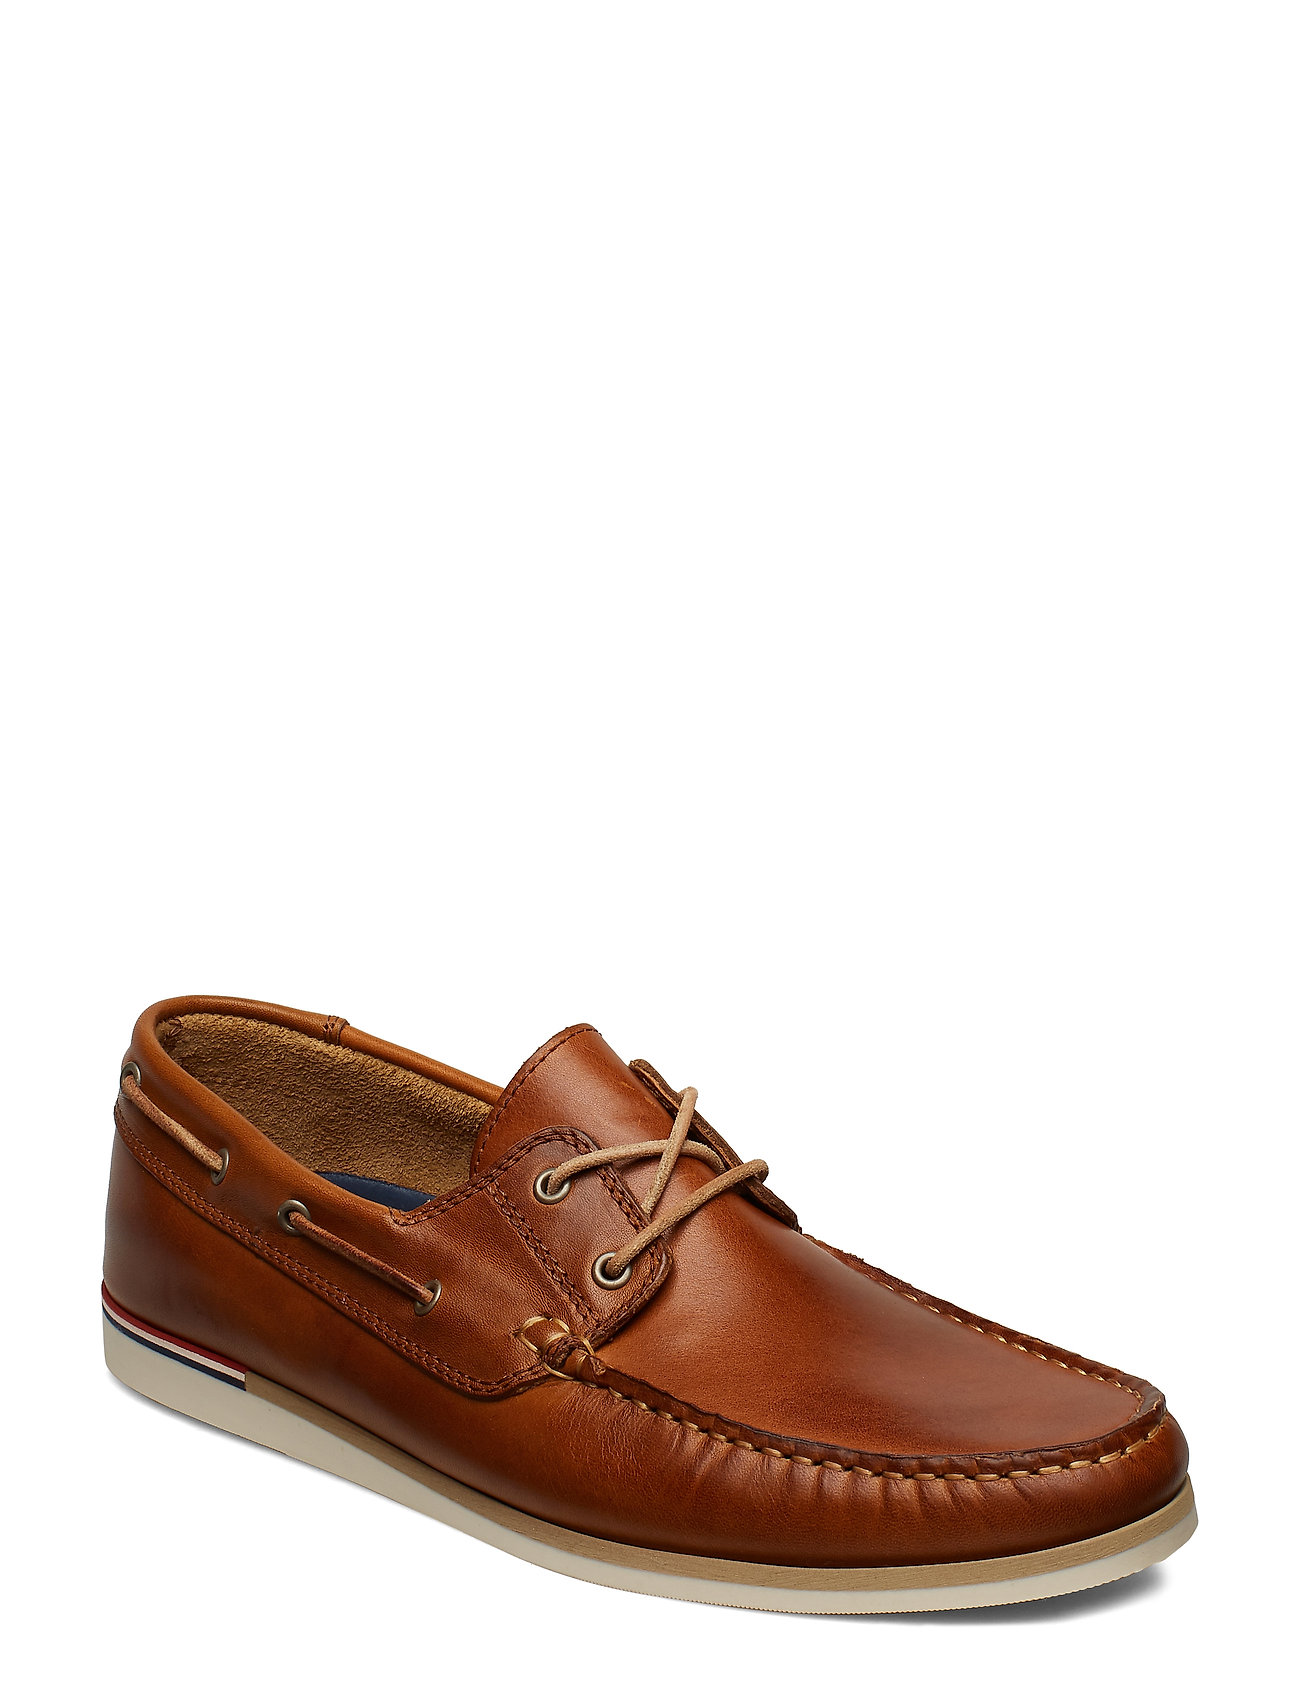 Dune London BLAINESS - TAN-LEATHER